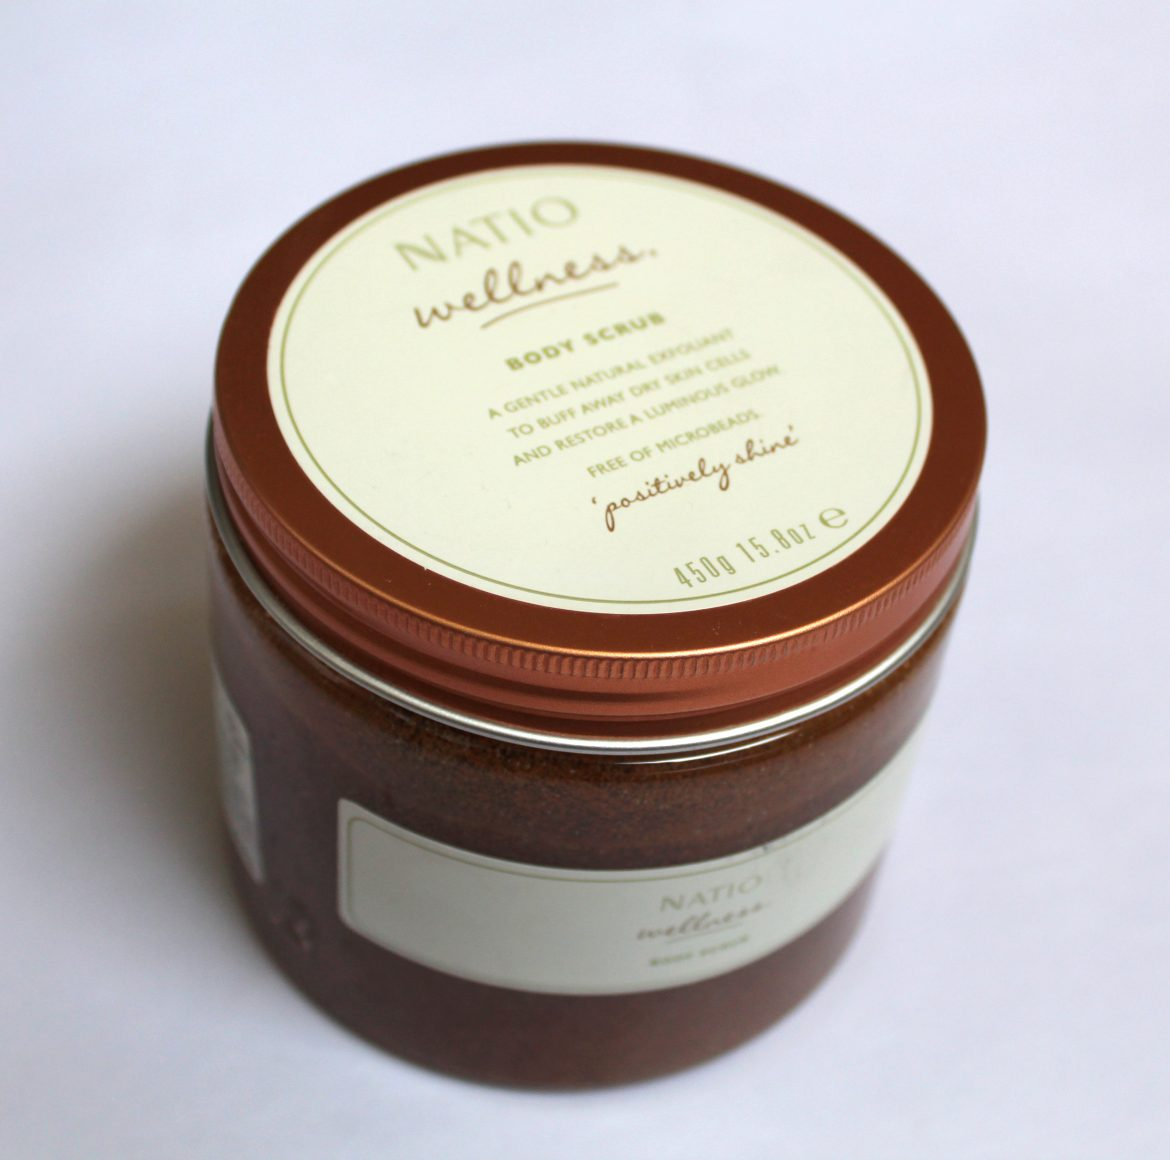 Natio Wellness Body Scrub review